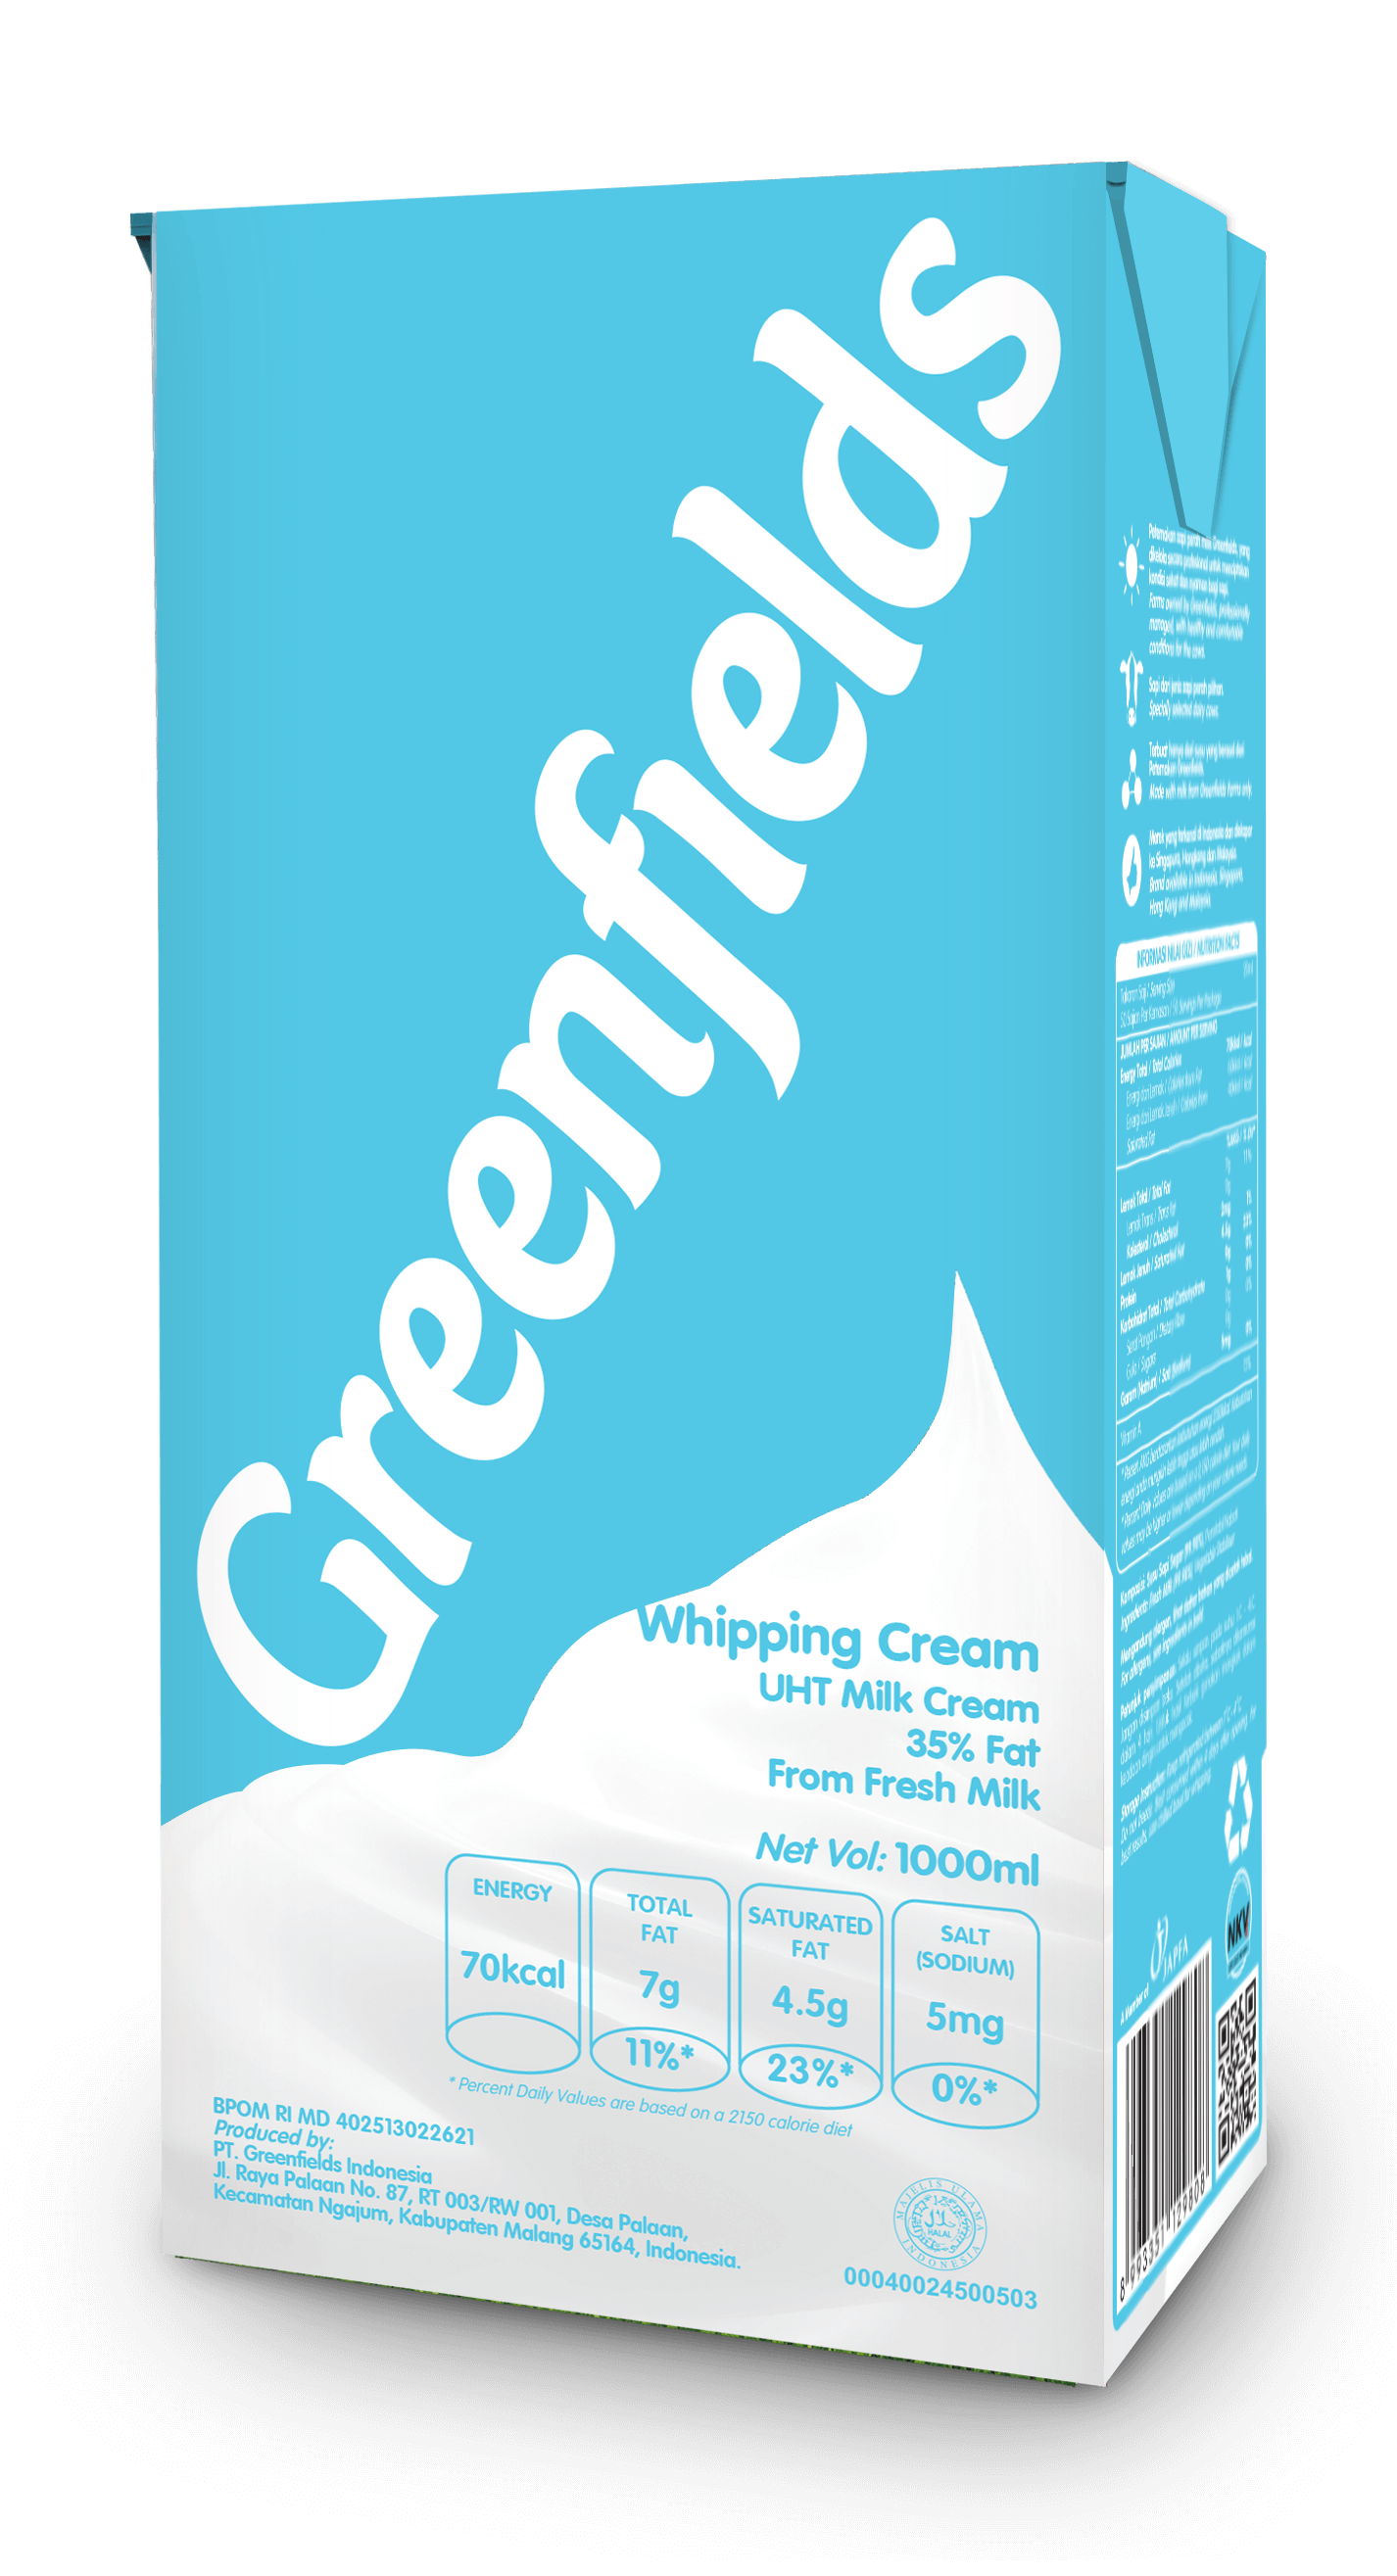 106. R1_GR BOX UHT 1L_WHIPPING CREAM_new eng